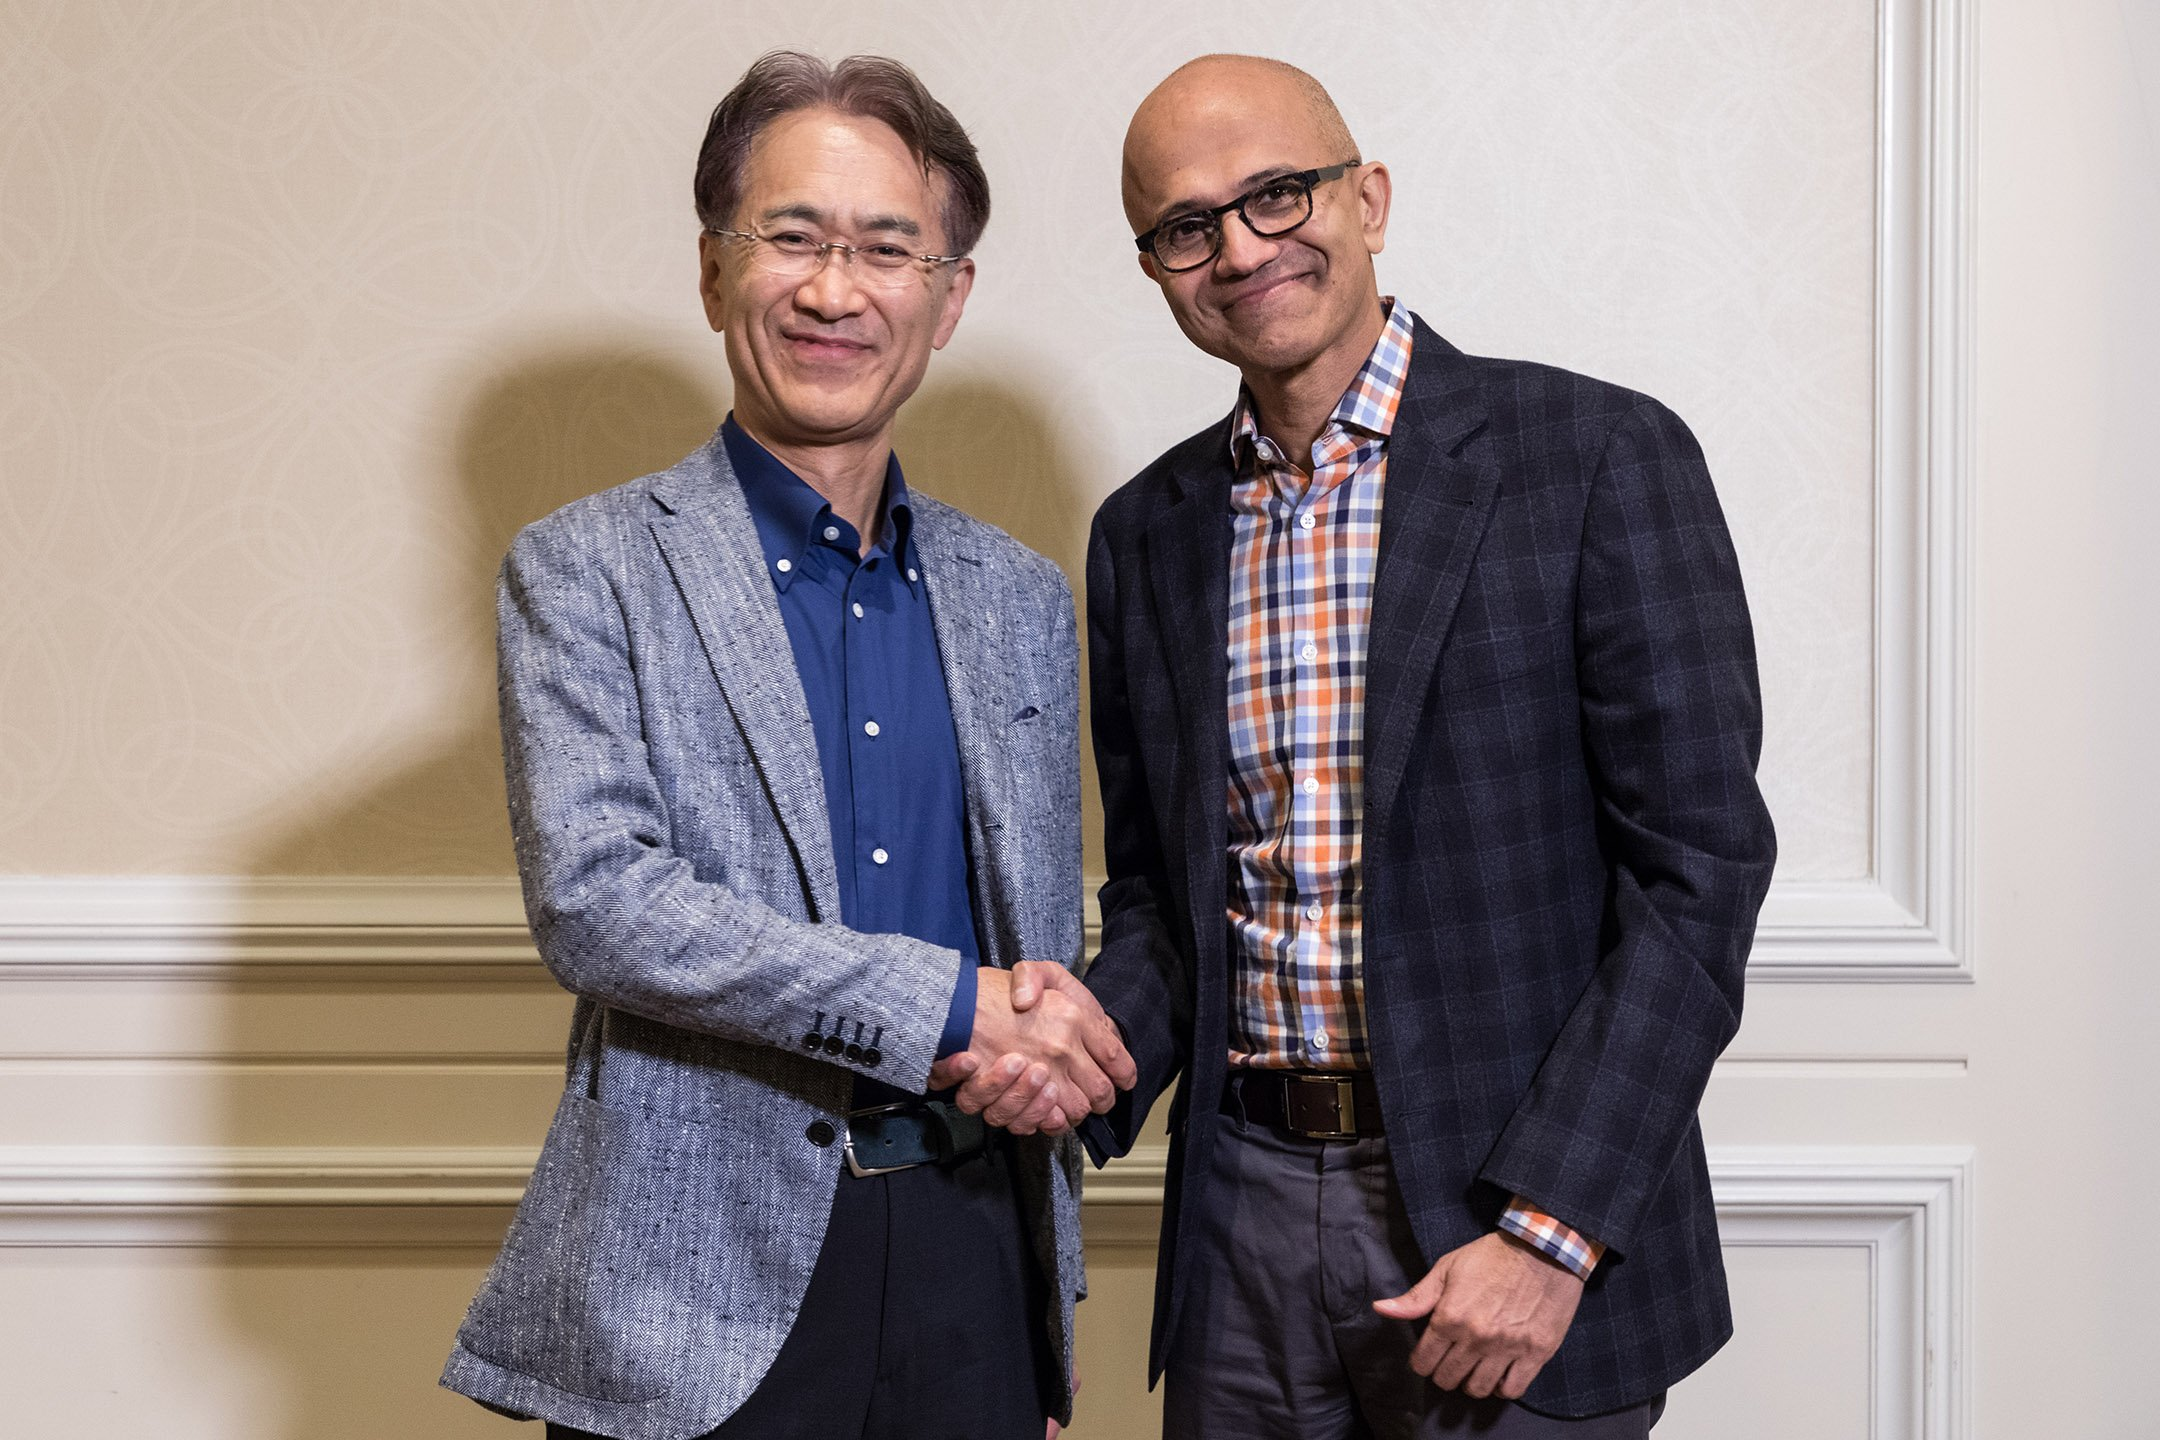 Sony and Microsoft to partner on joint cloud-based solutions